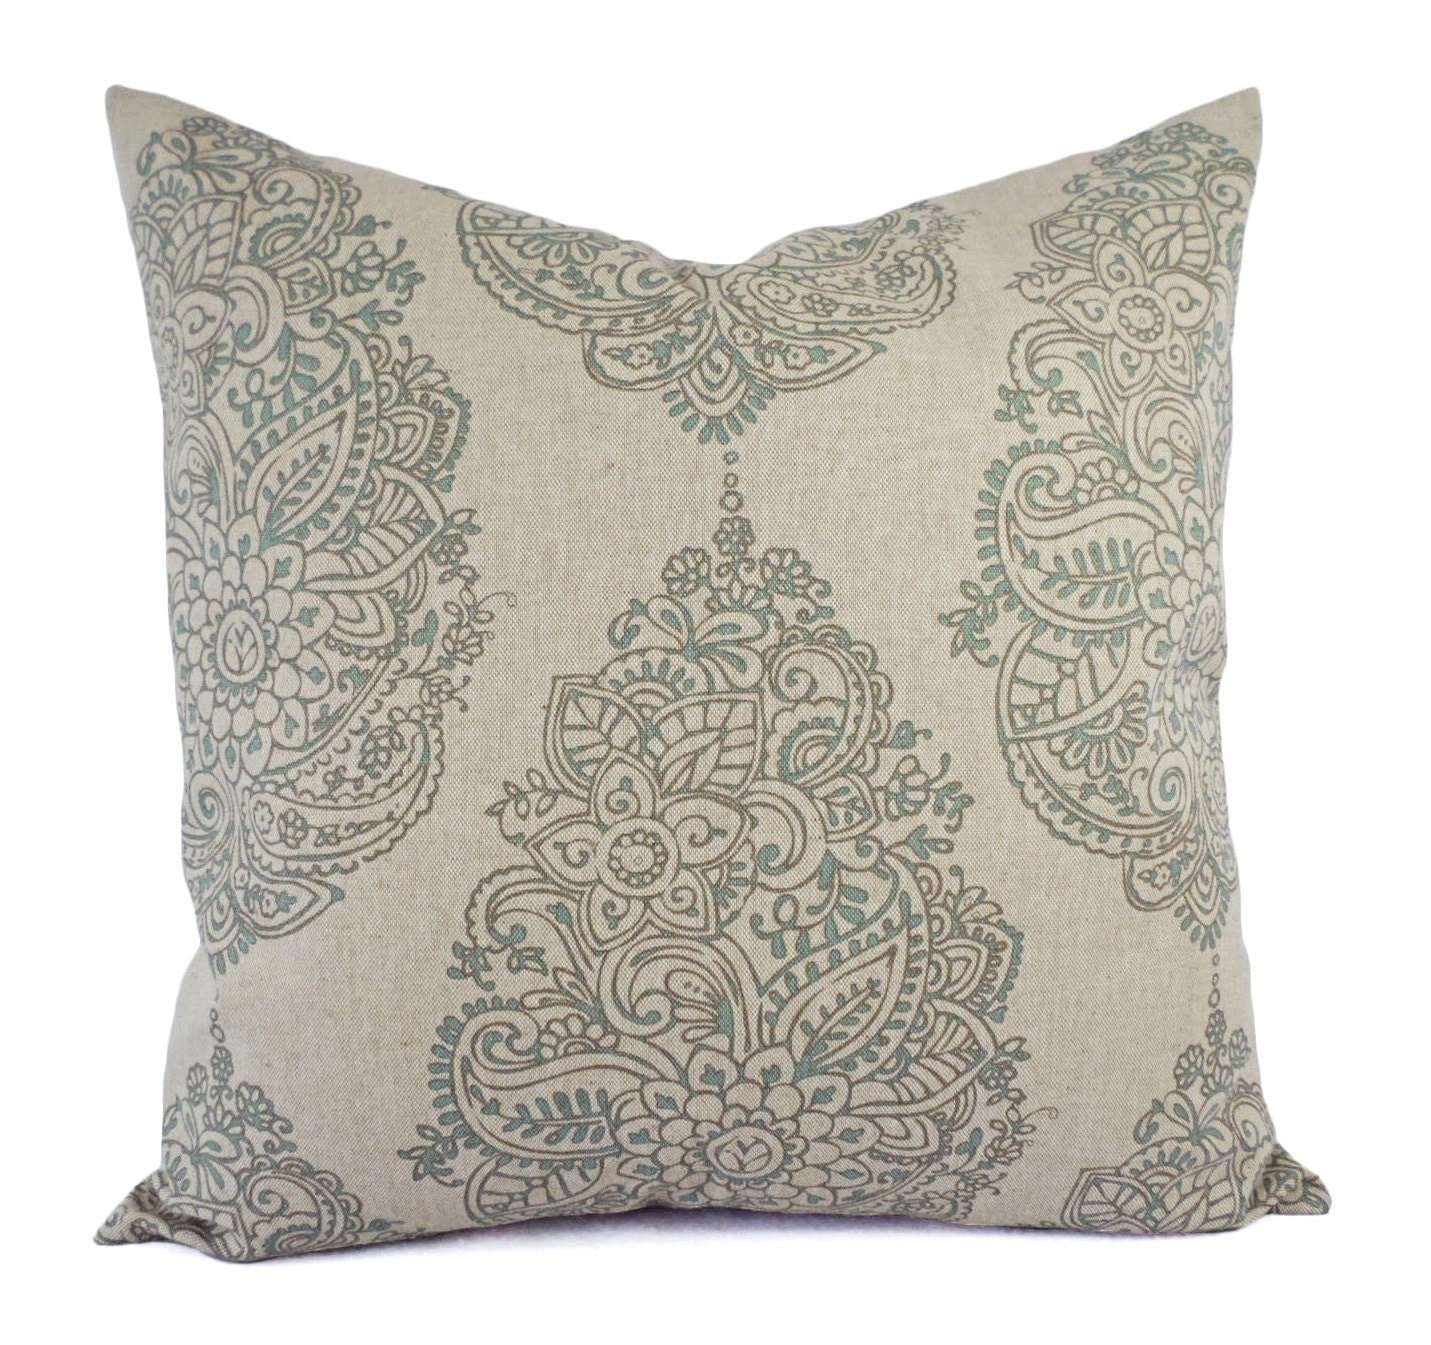 Taupe and Blue Decorative Pillow Covers Two Floral Throw